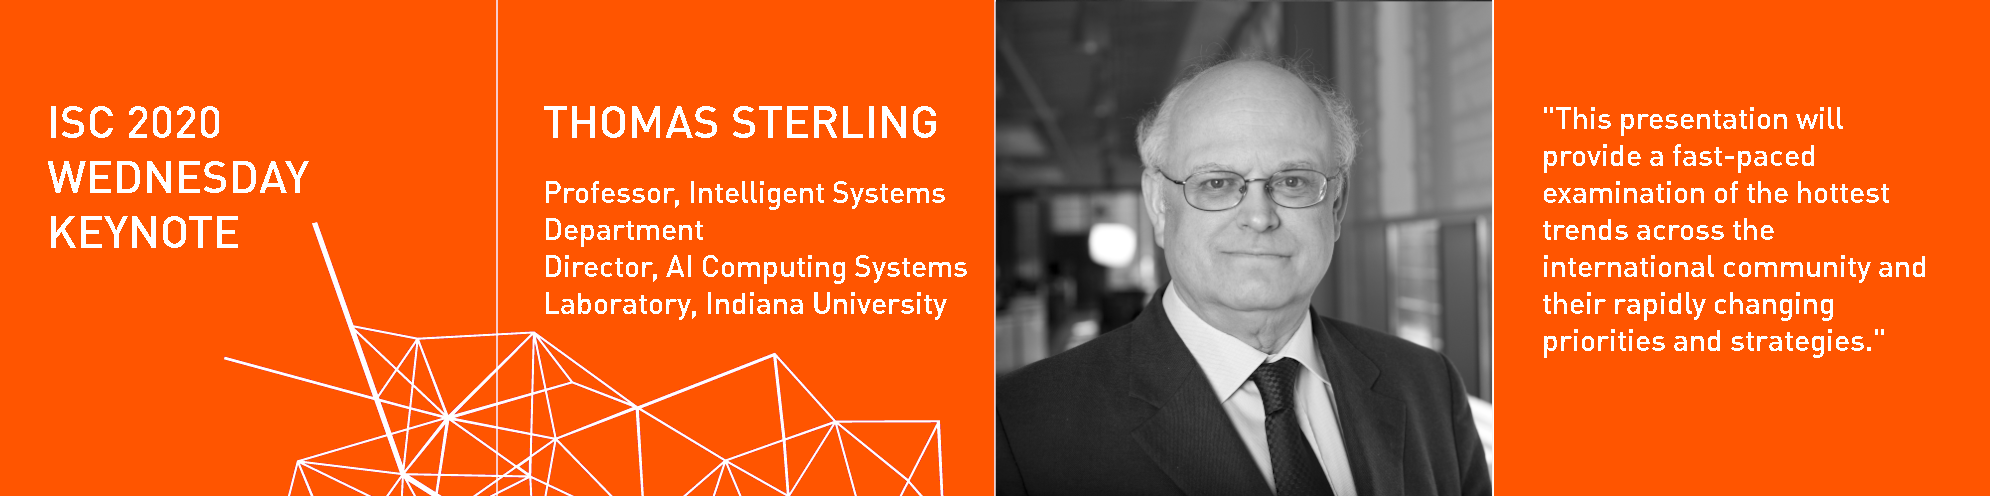 ISC 2020 Wednesday Keynote Thomas Sterling